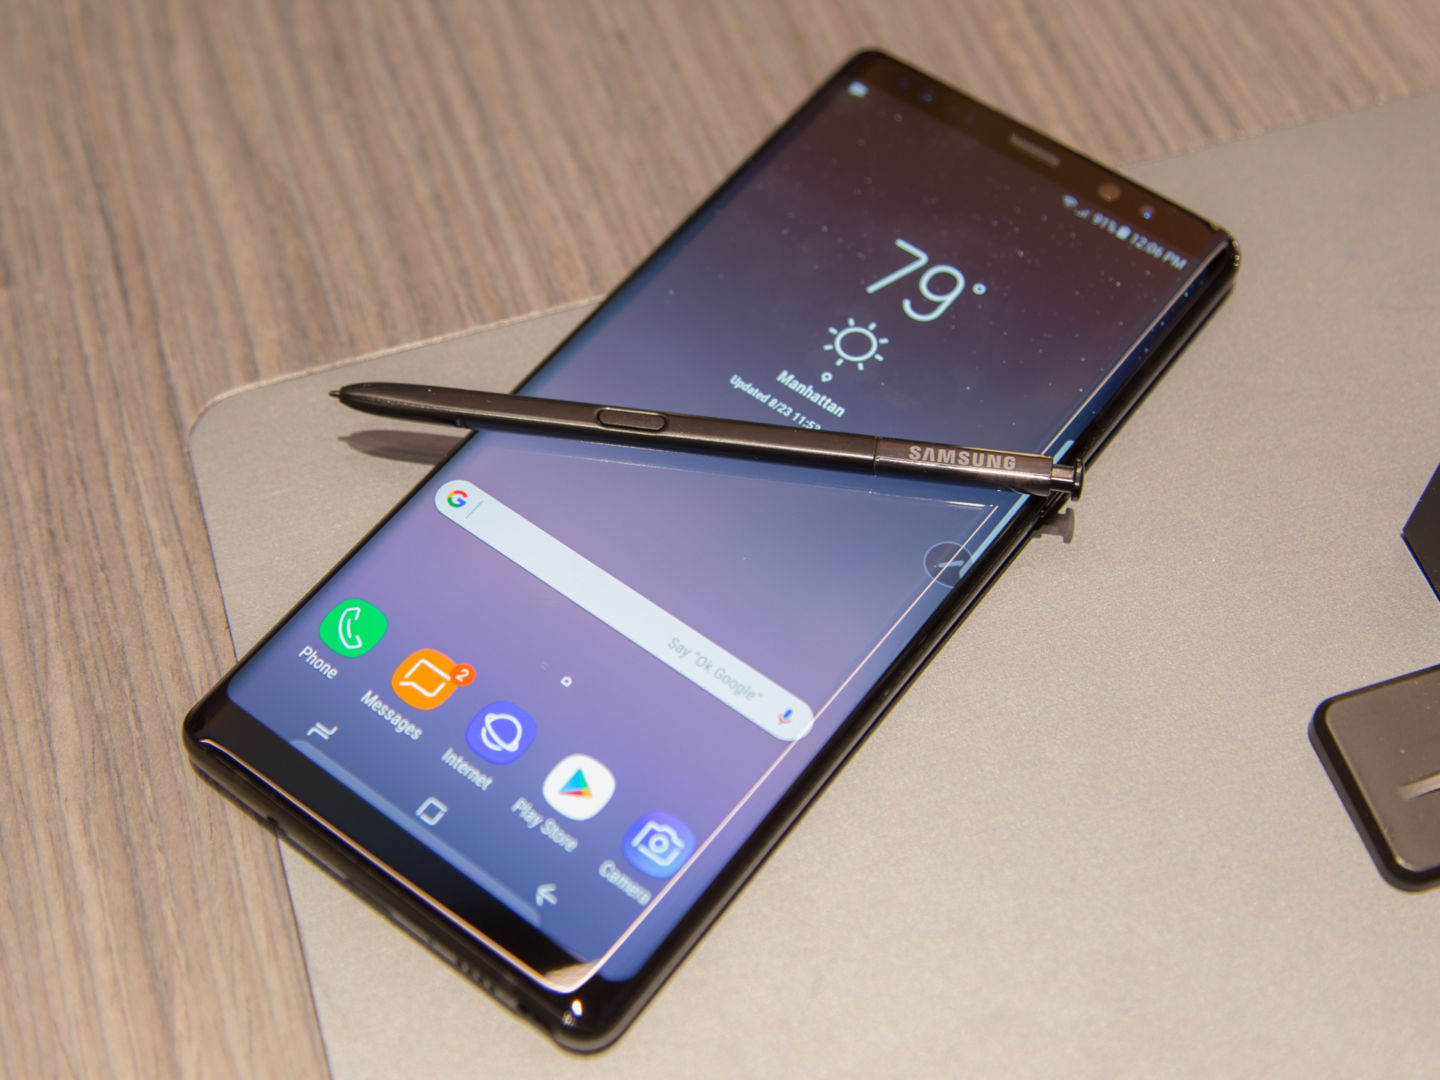 Samsung Note8 came ,but haven't we seen it before